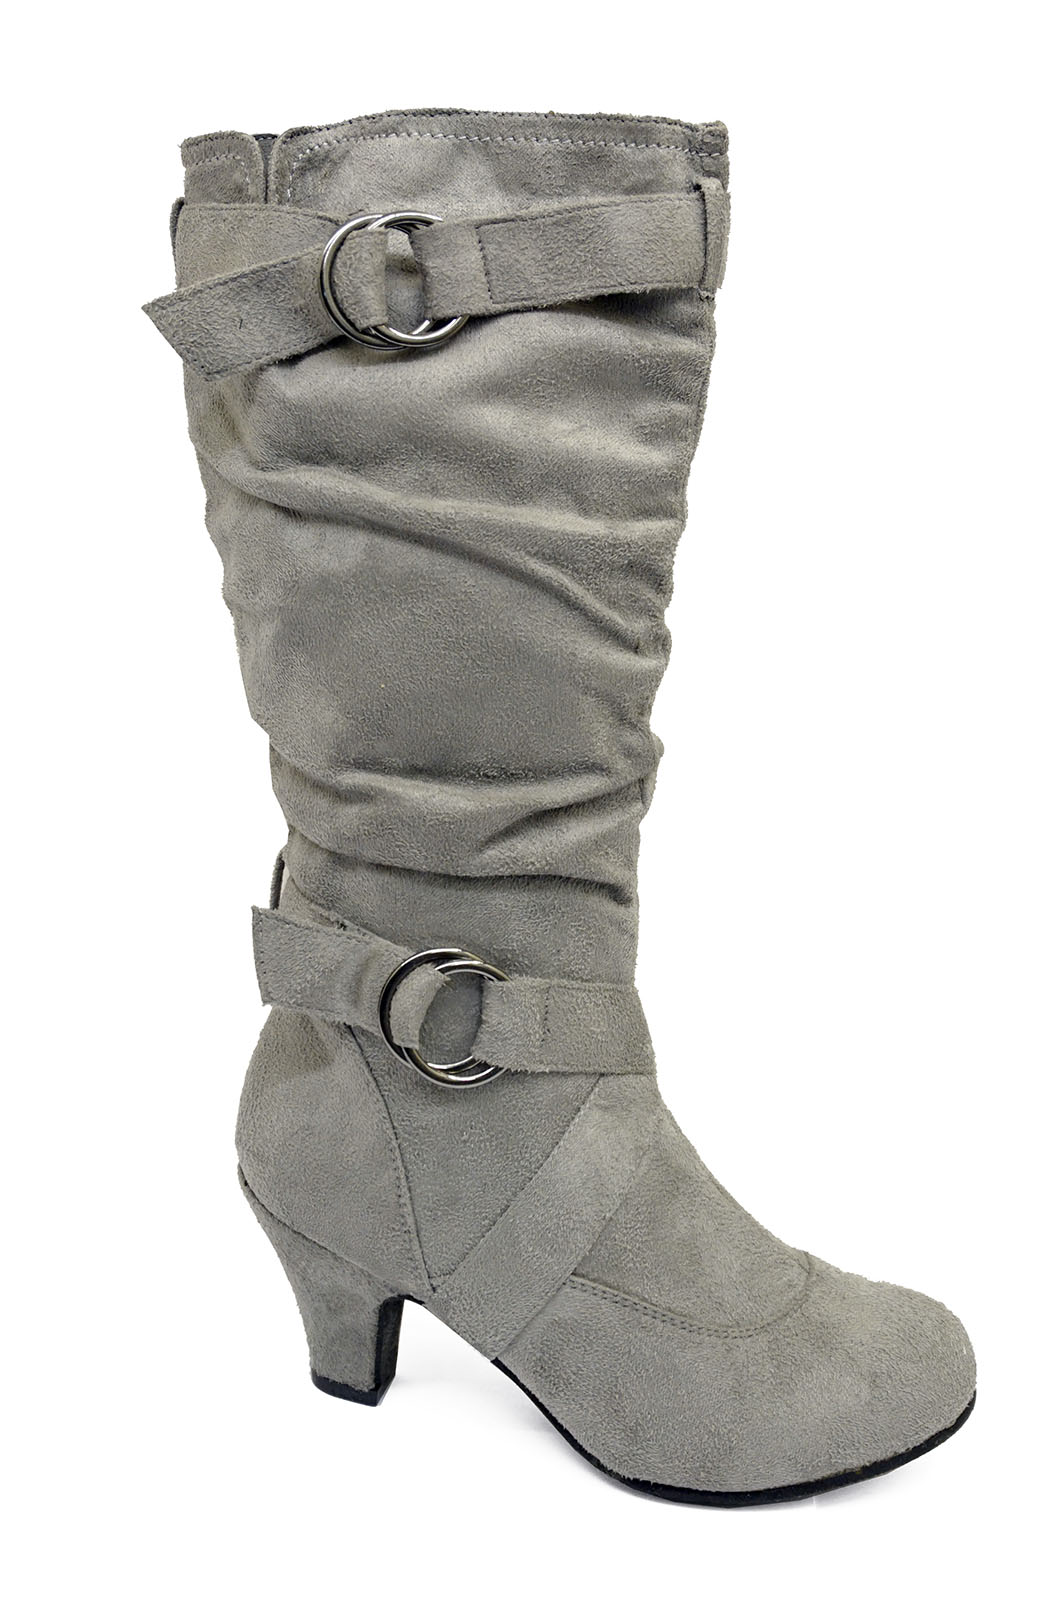 LADIES-GREY-ZIP-UP-BIKER-SLOUCH-RUCHED-TALL-KNEE-CALF-LOW-HEEL-BOOTS-SHOES-4-10 thumbnail 23